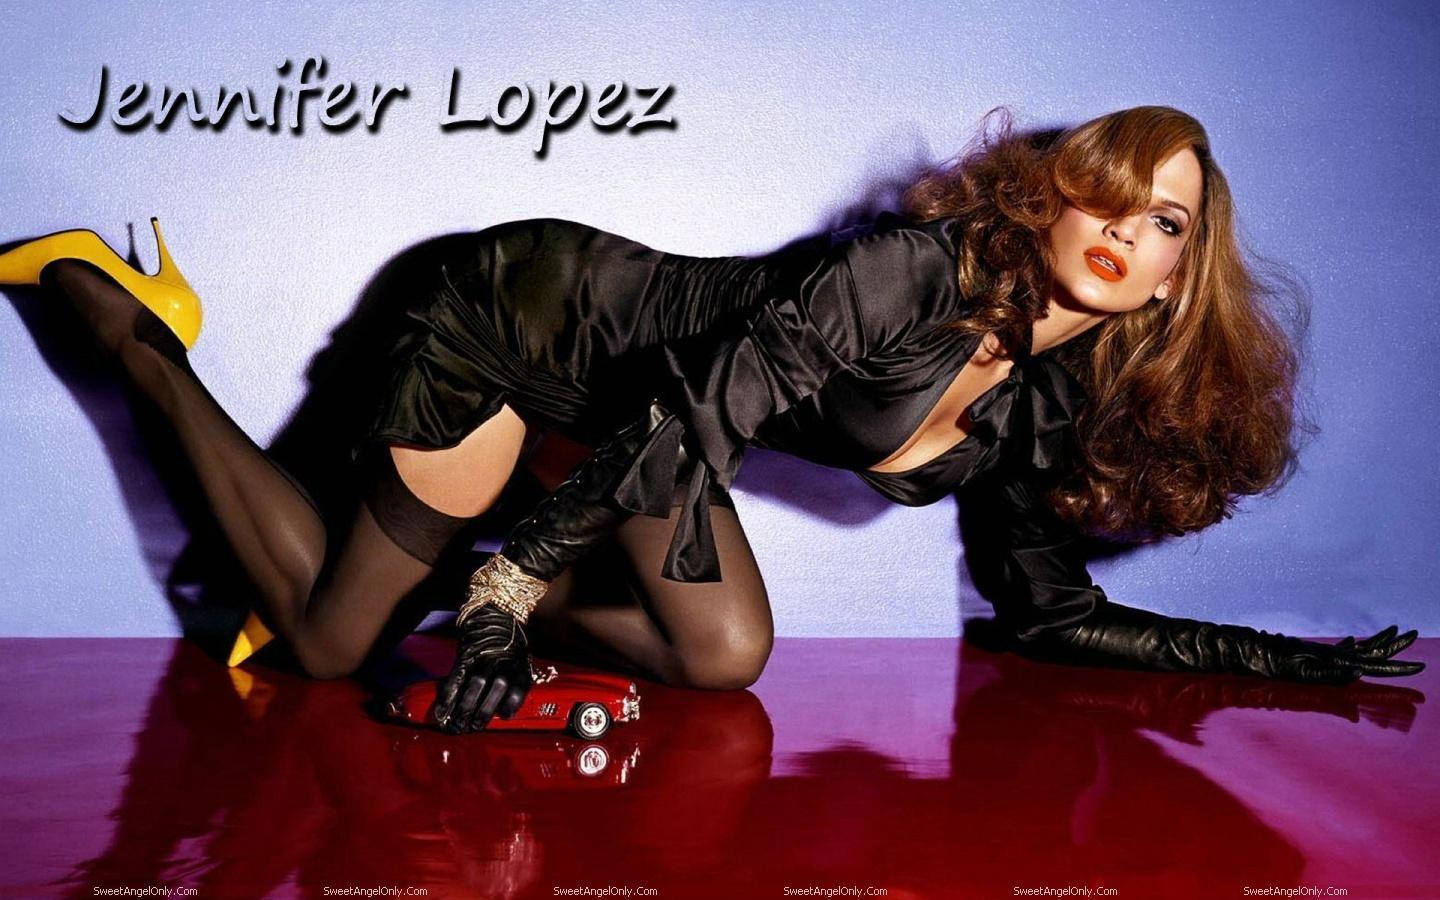 http://4.bp.blogspot.com/-kct8T7H4Nm0/TWjm19Z-qWI/AAAAAAAAE00/suxQiox1jwg/s1600/actress_jennifer_lopez_hot_wallpapers_05.jpg